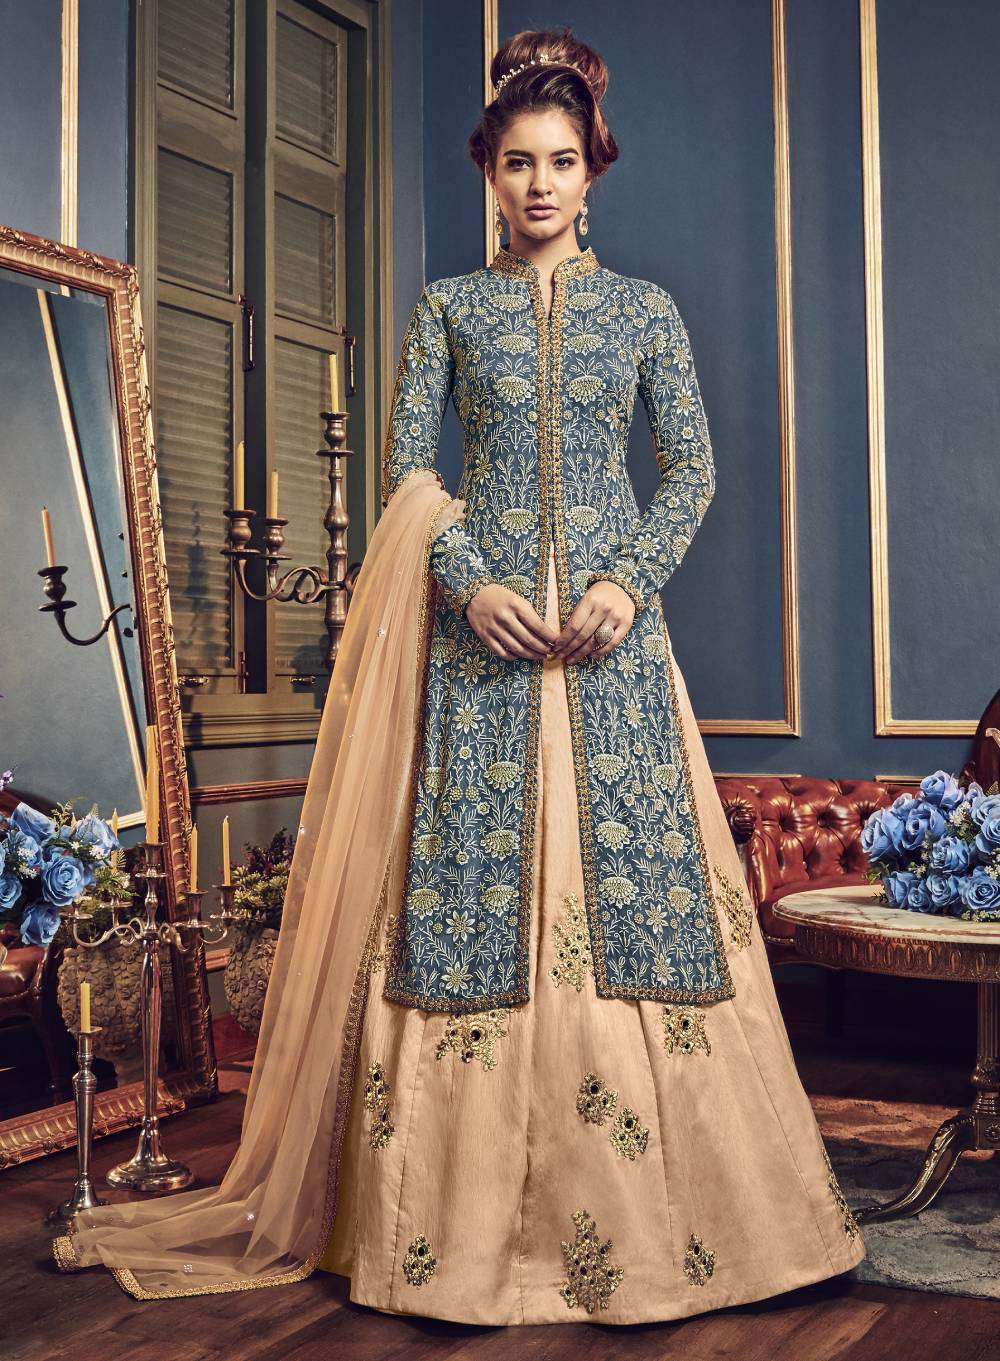 Light-Blue Swiss Georgette Floral Embroidered Salwar Kameez MYSK-1644